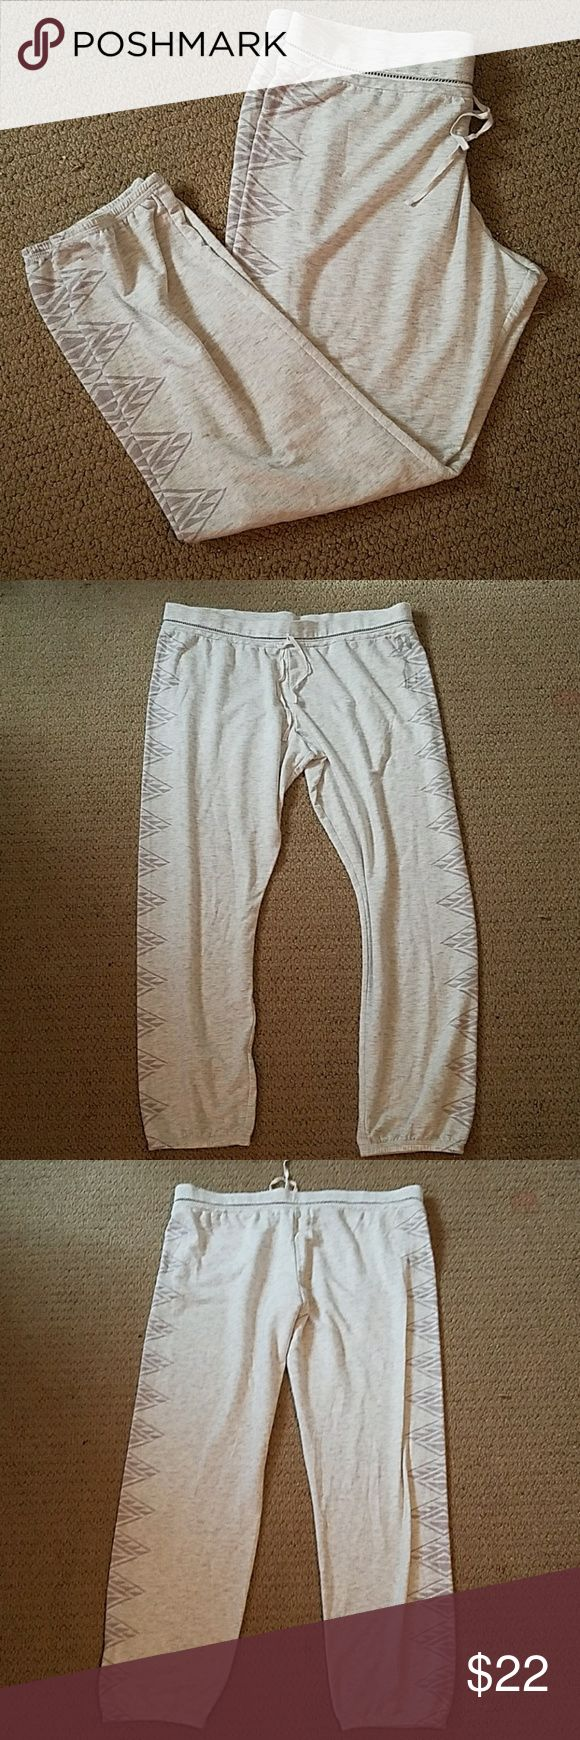 NWOT Victoria's Secret Sweatpants Light grey VS sweatpants with design going up the side of each leg. Never worn except to try on! VERY comfortable and VERY soft! Victoria's Secret Pants Track Pants & Joggers